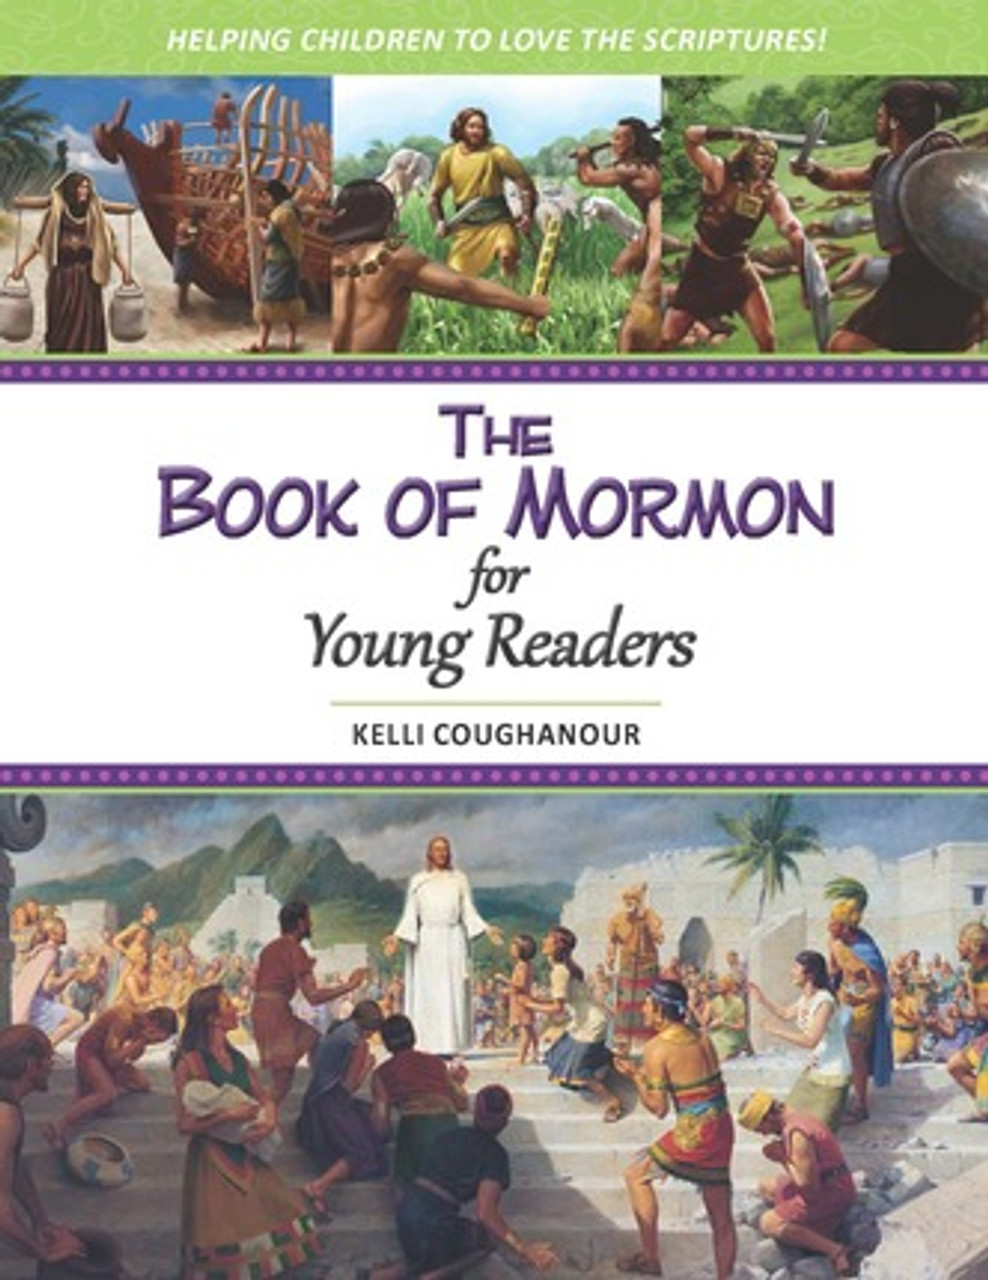 The Book of Mormon for Young Readers (Hardcover)